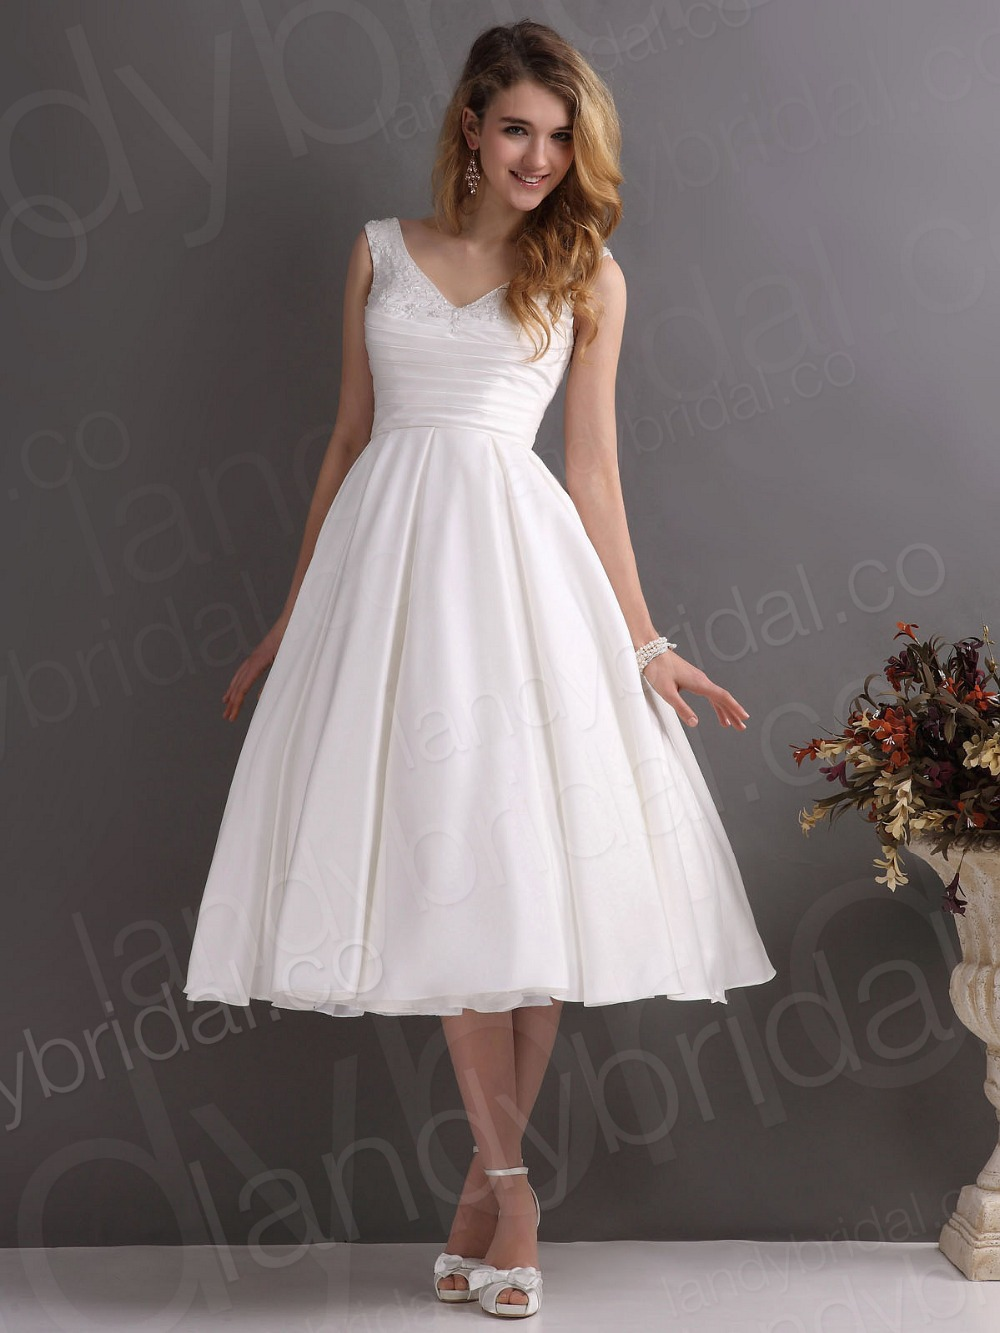 Neck Short Princess Beaded White Wedding Dresses 50s Ivory Bridal Gown Sale In From Weddings Events On Aliexpress